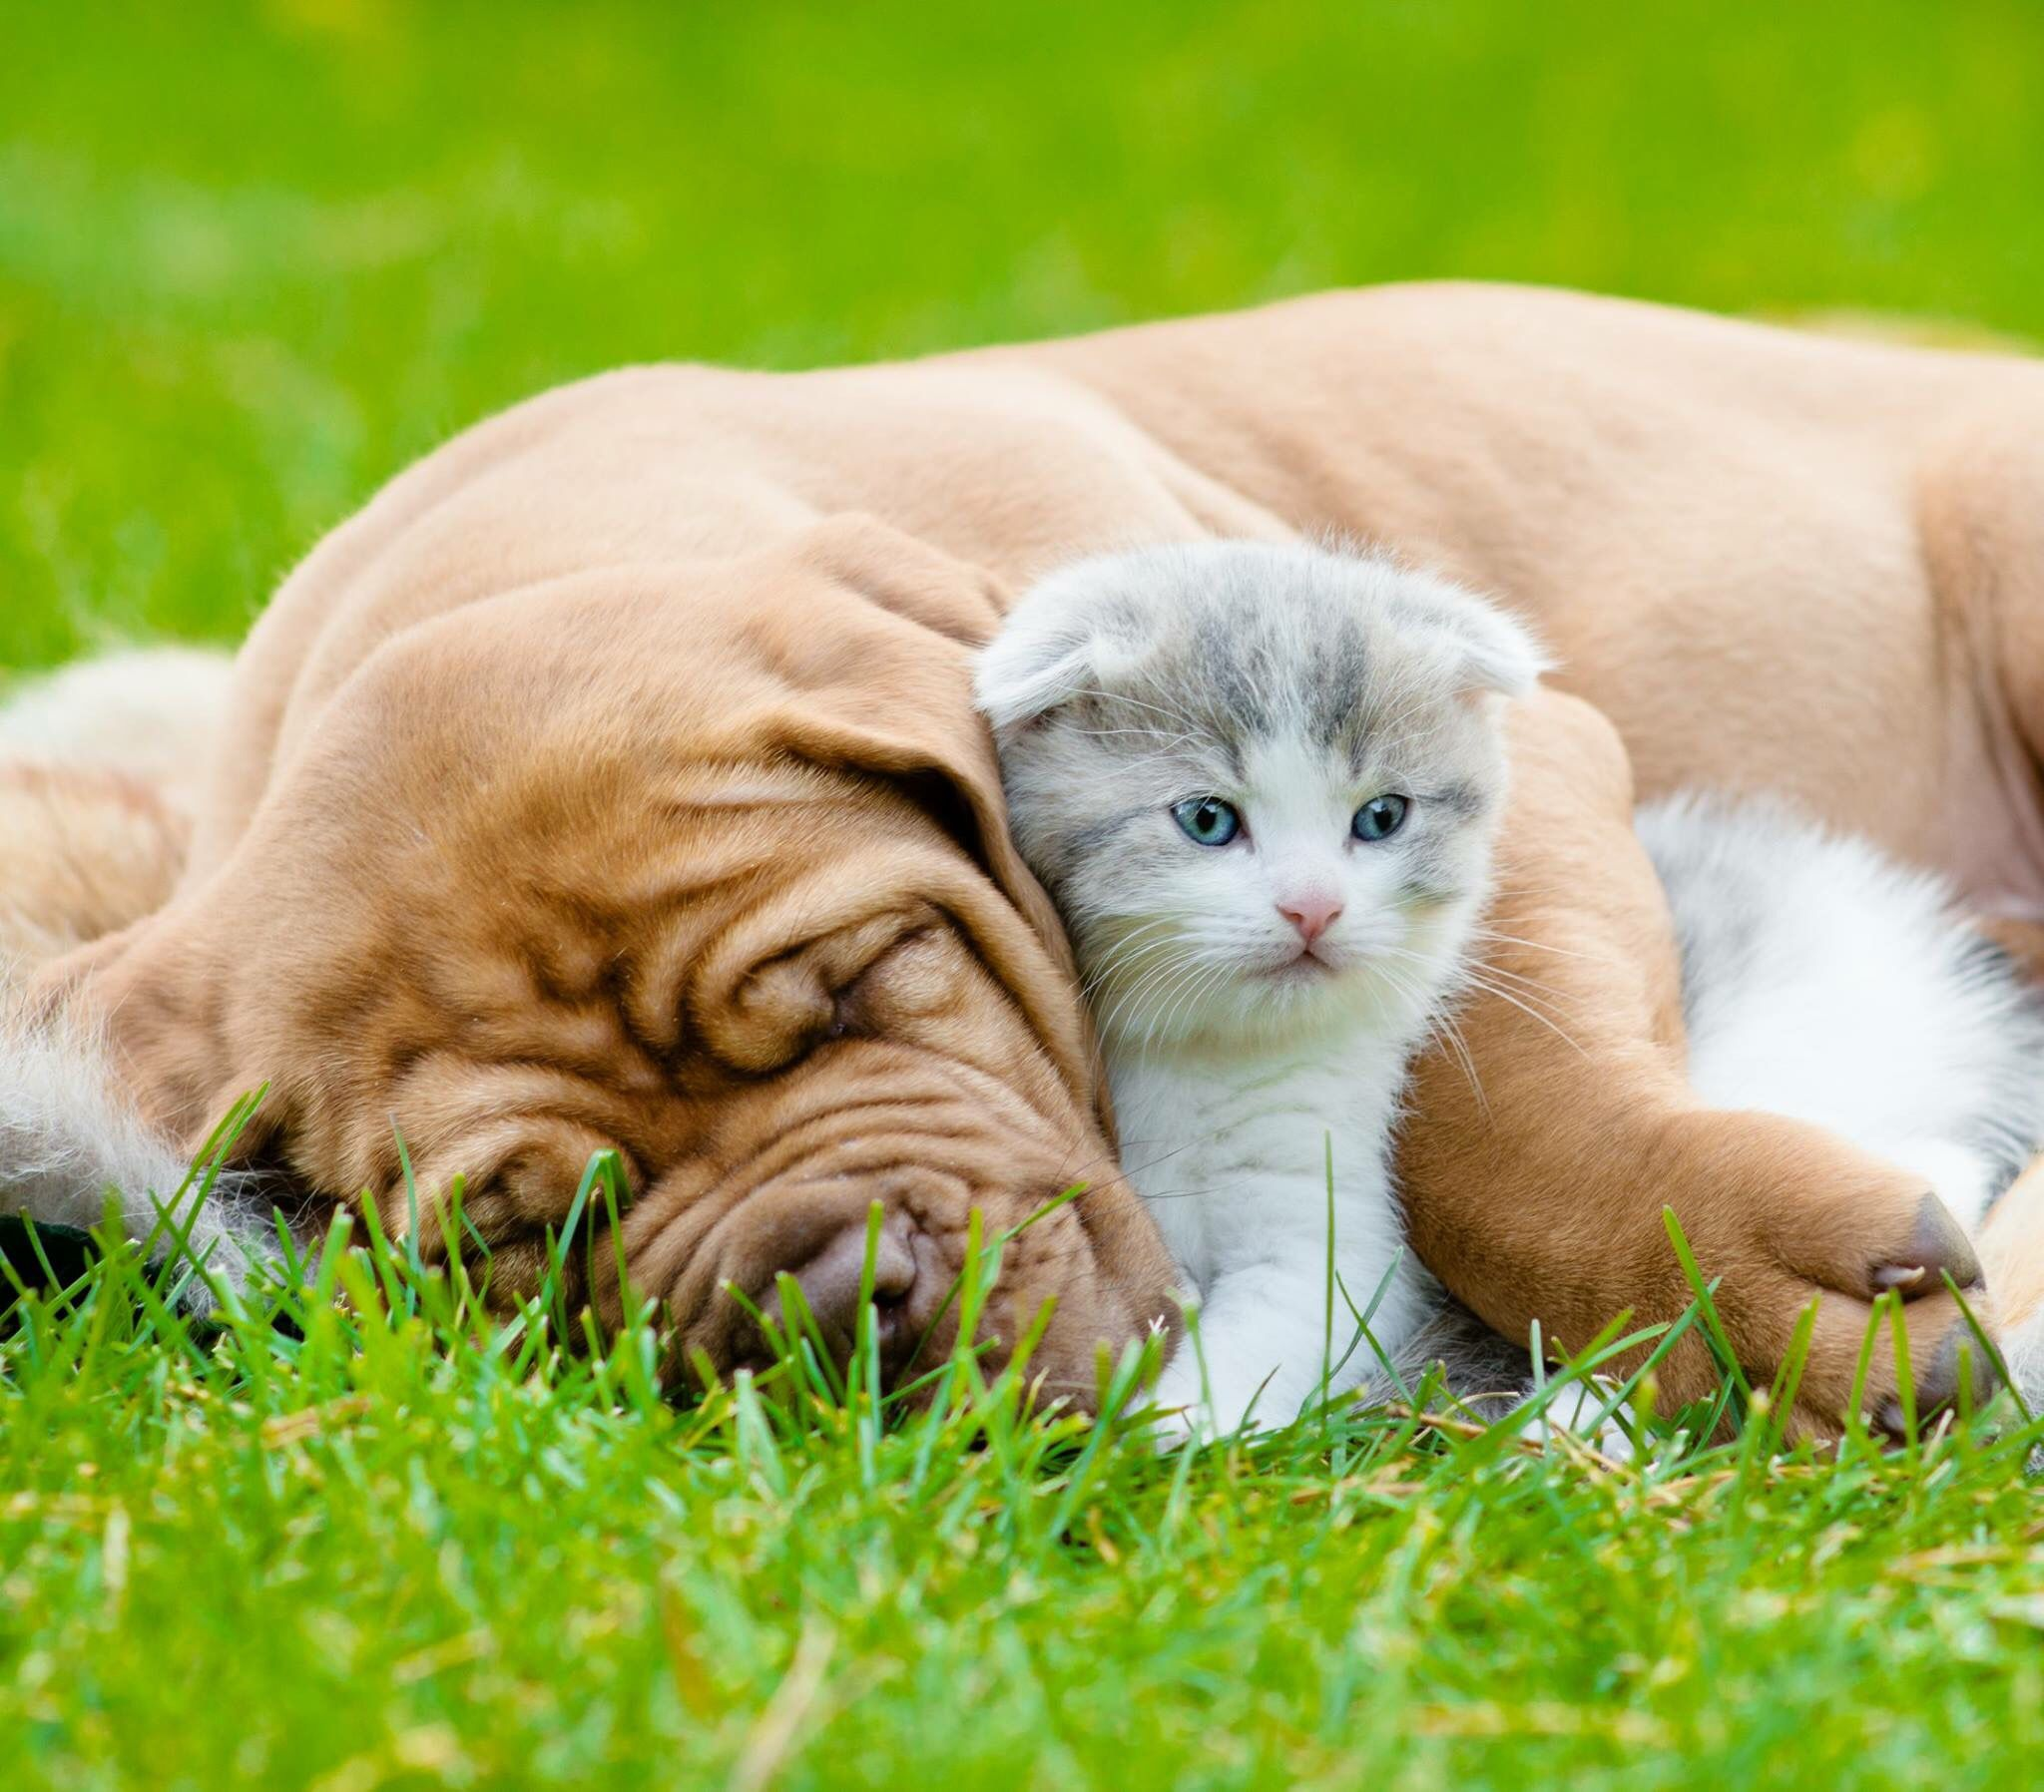 Dog Sleeping Kitten With Images Cute Animals Puppies Puppy Snuggles Cute Animals With Funny Captions